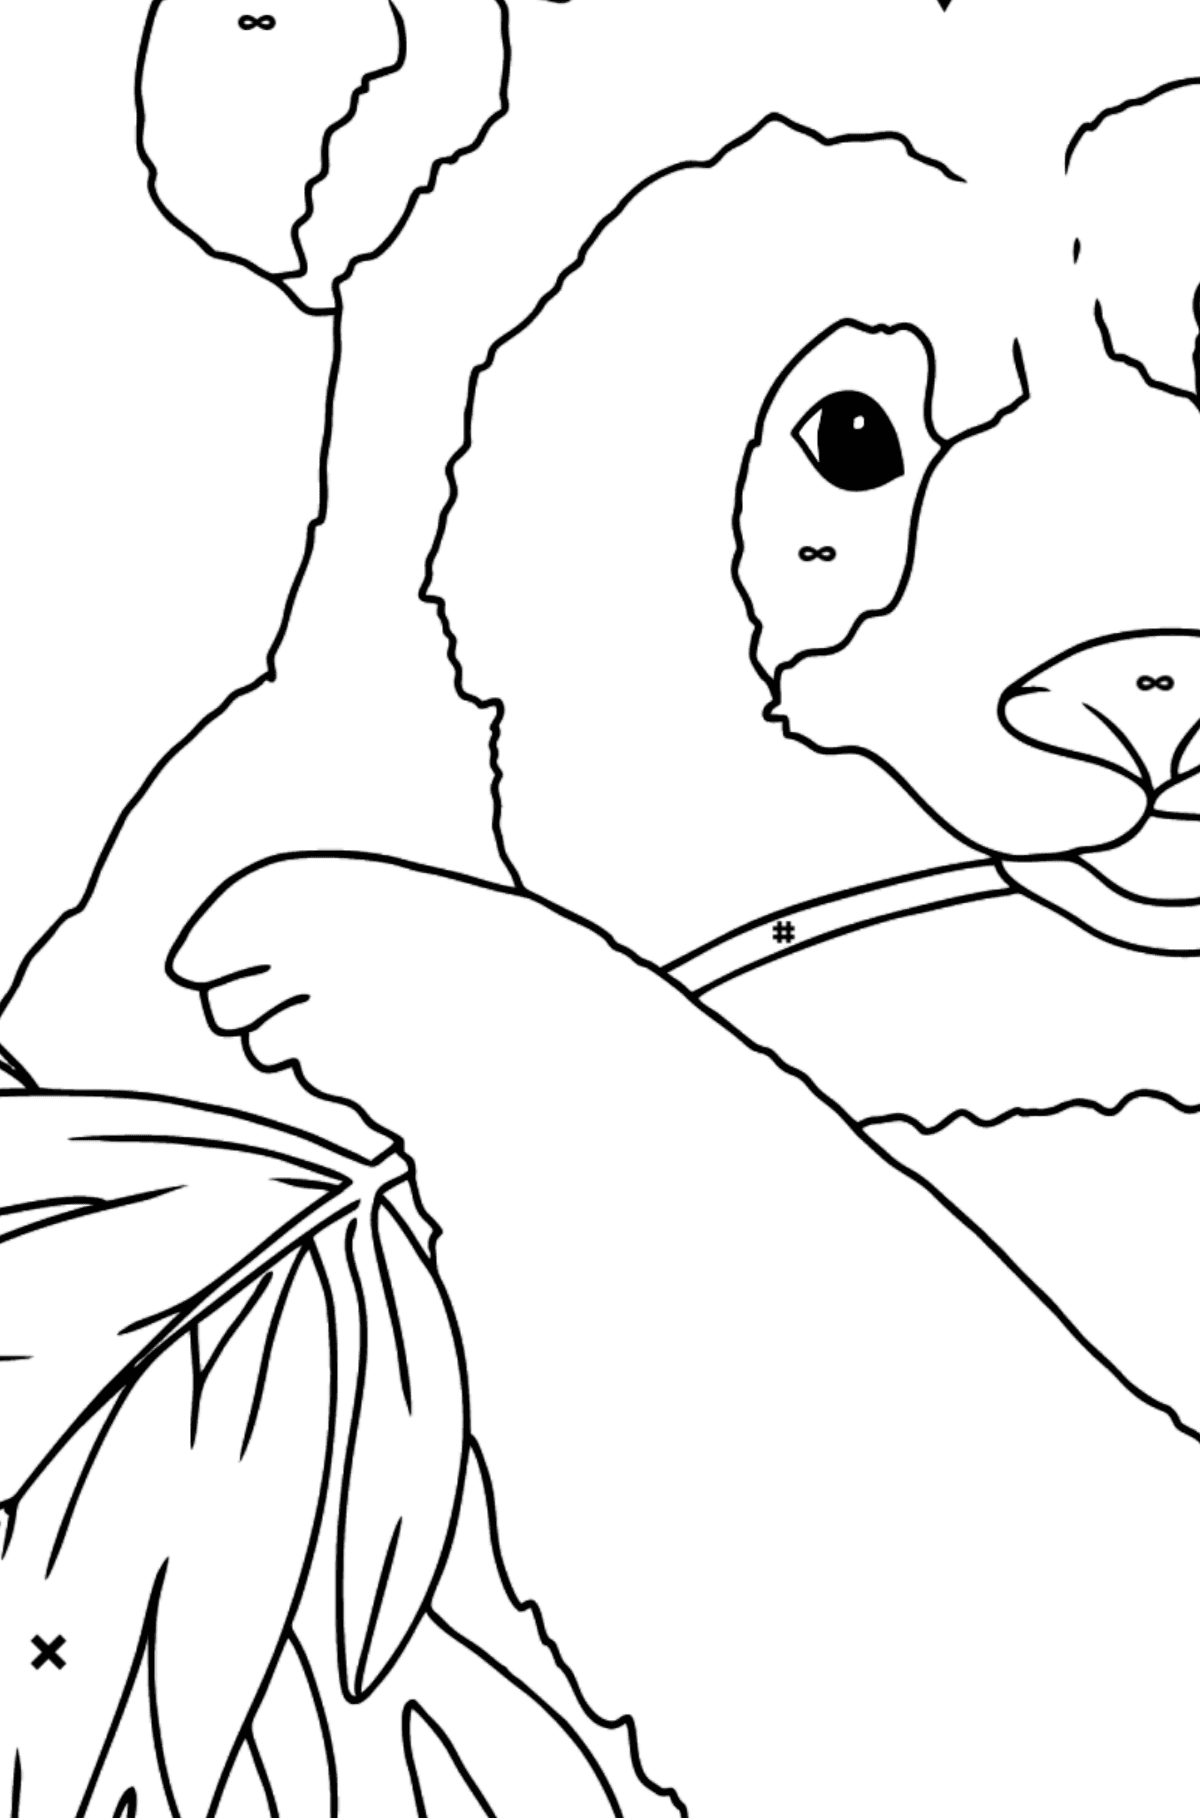 Coloring Page  - A Panda is Eating Leaves - Coloring by Symbols for Kids